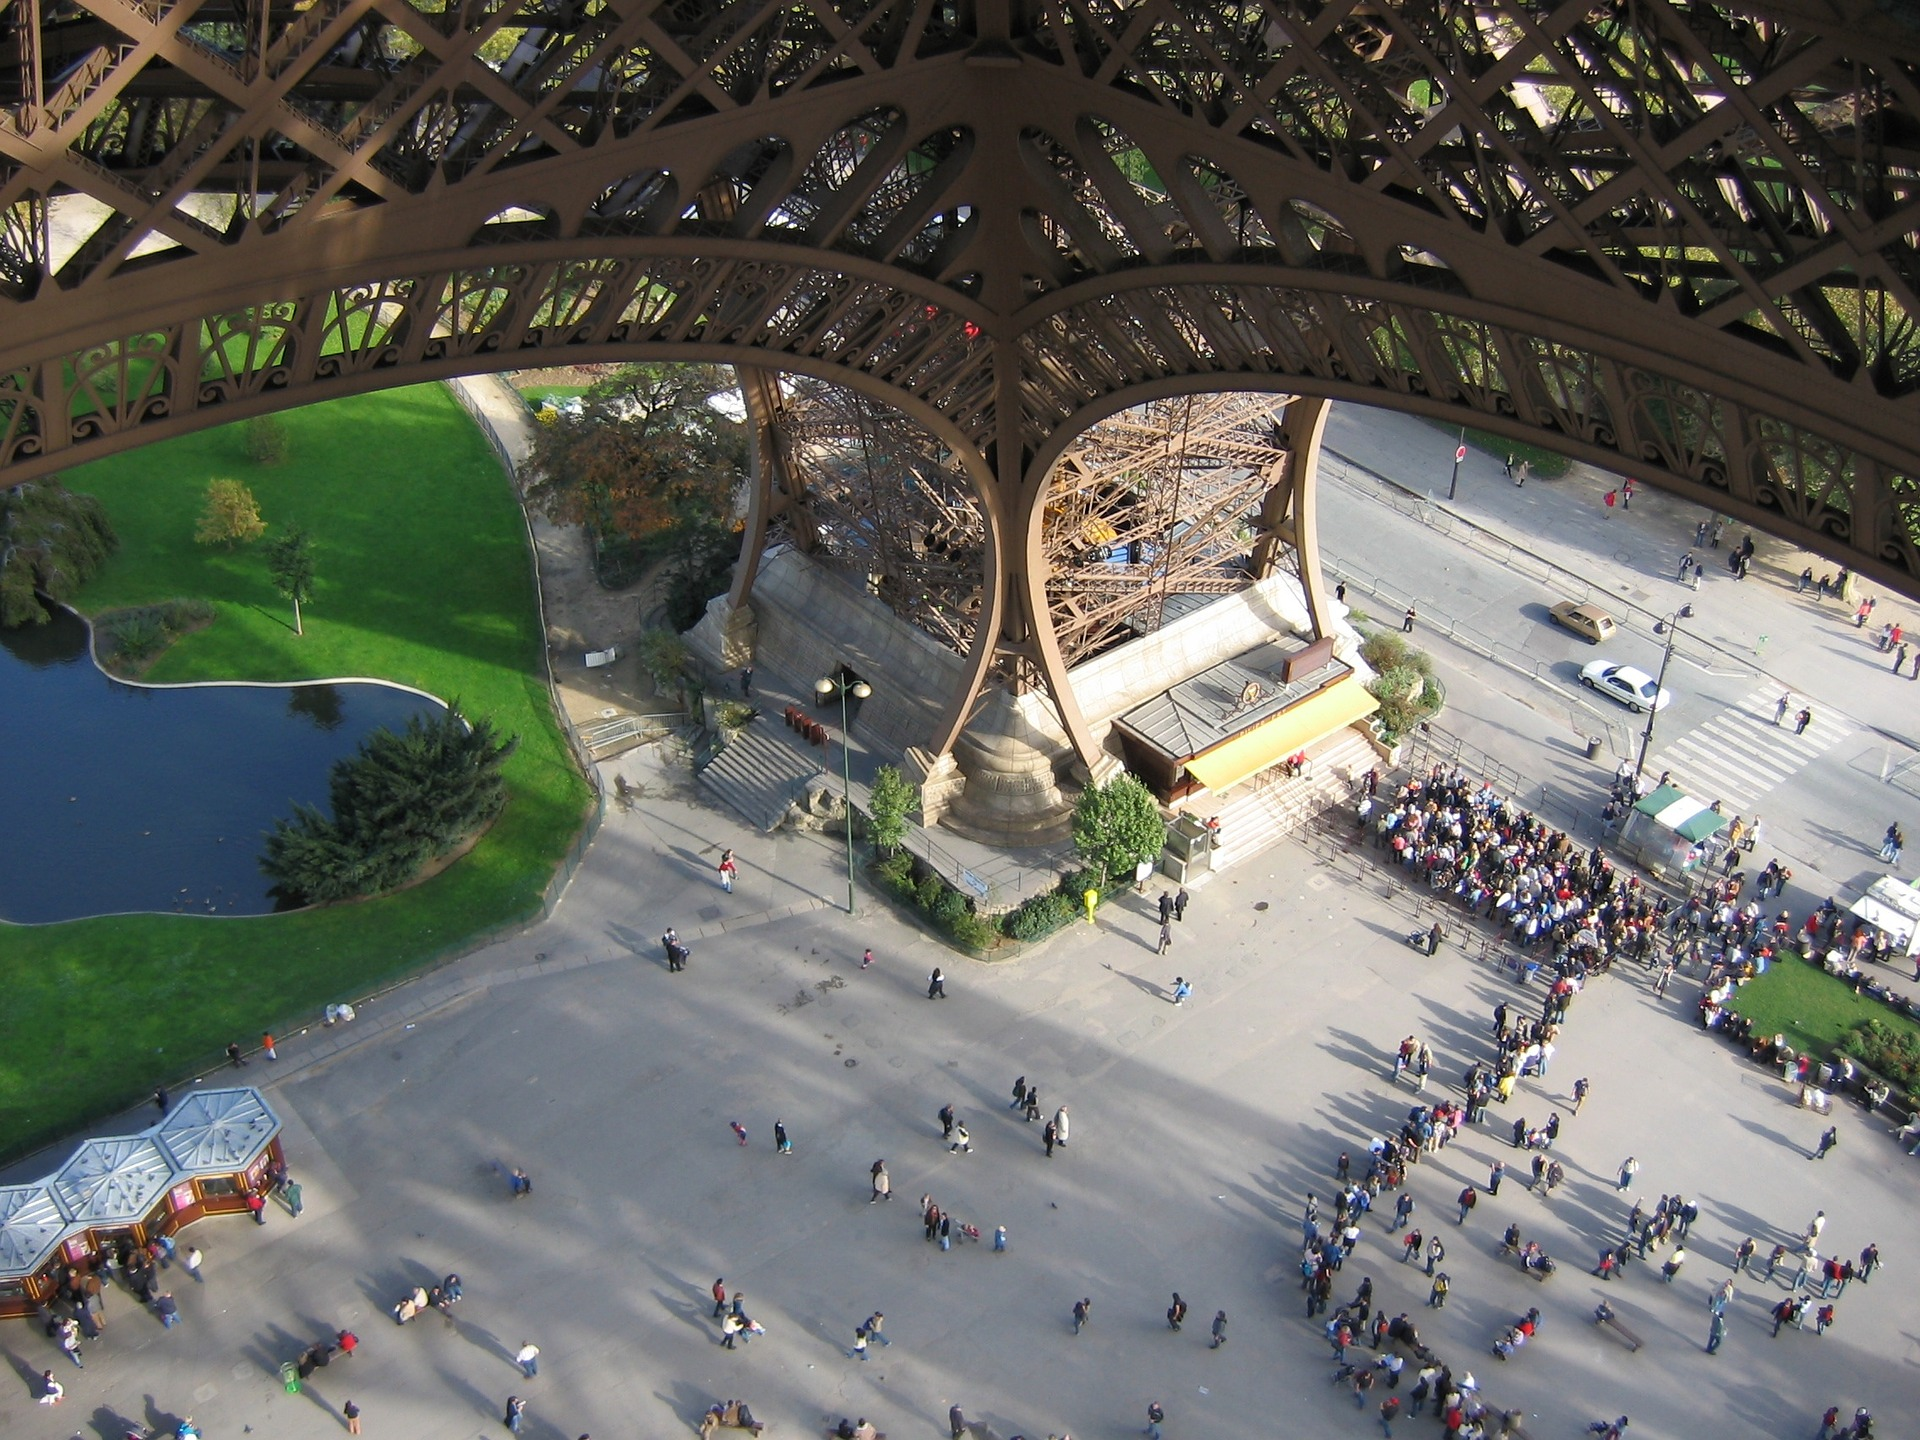 Visitors at the Eiffel Tower